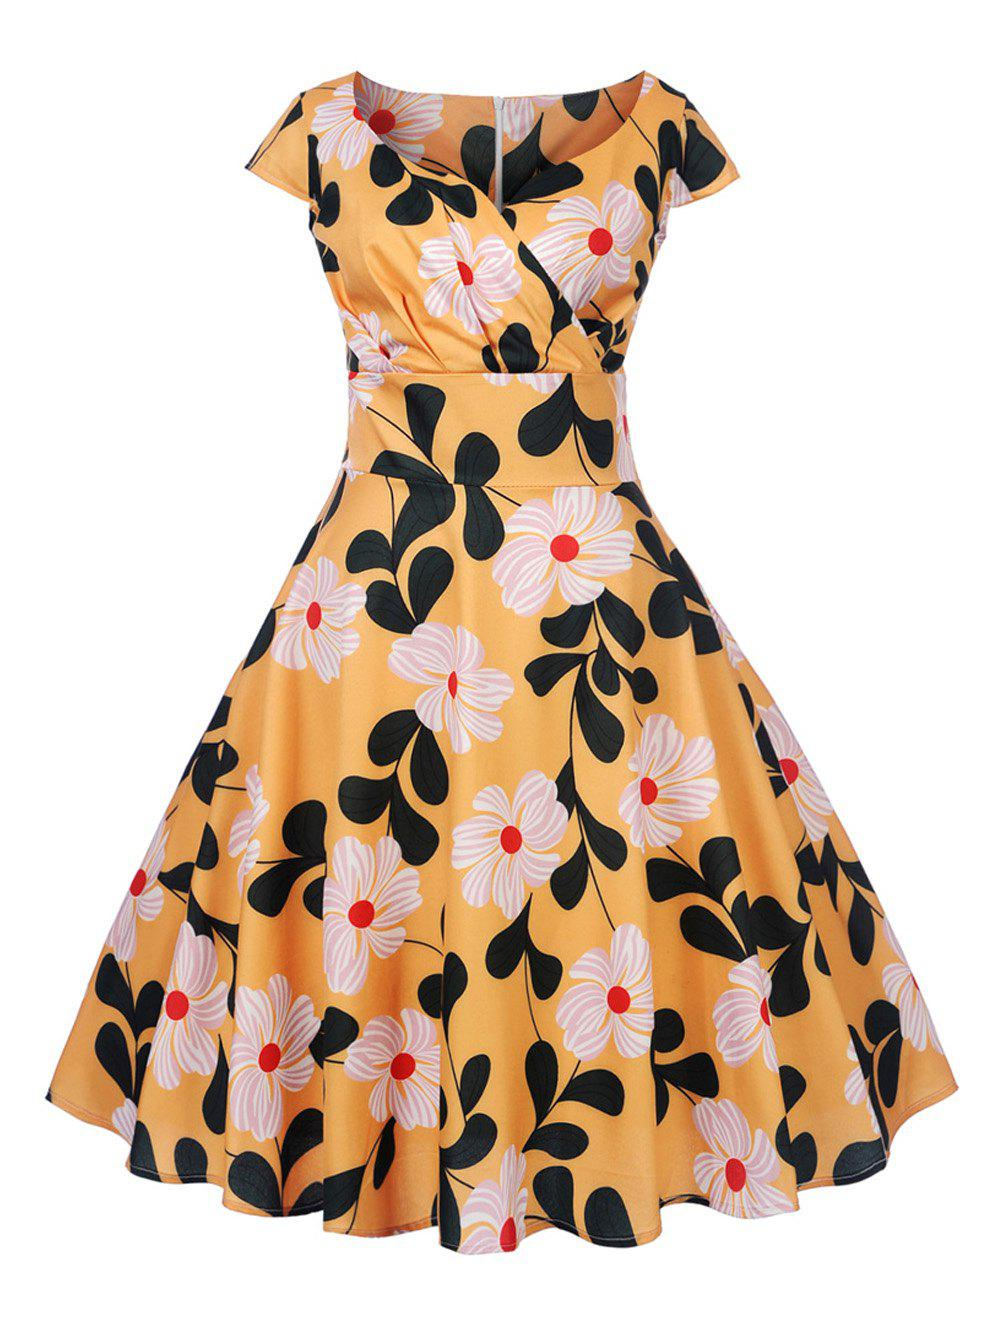 New Women's Vintage 50s 60s Retro Rockabilly Pinup Housewife Party Swing Dress - ORANGE 2XL